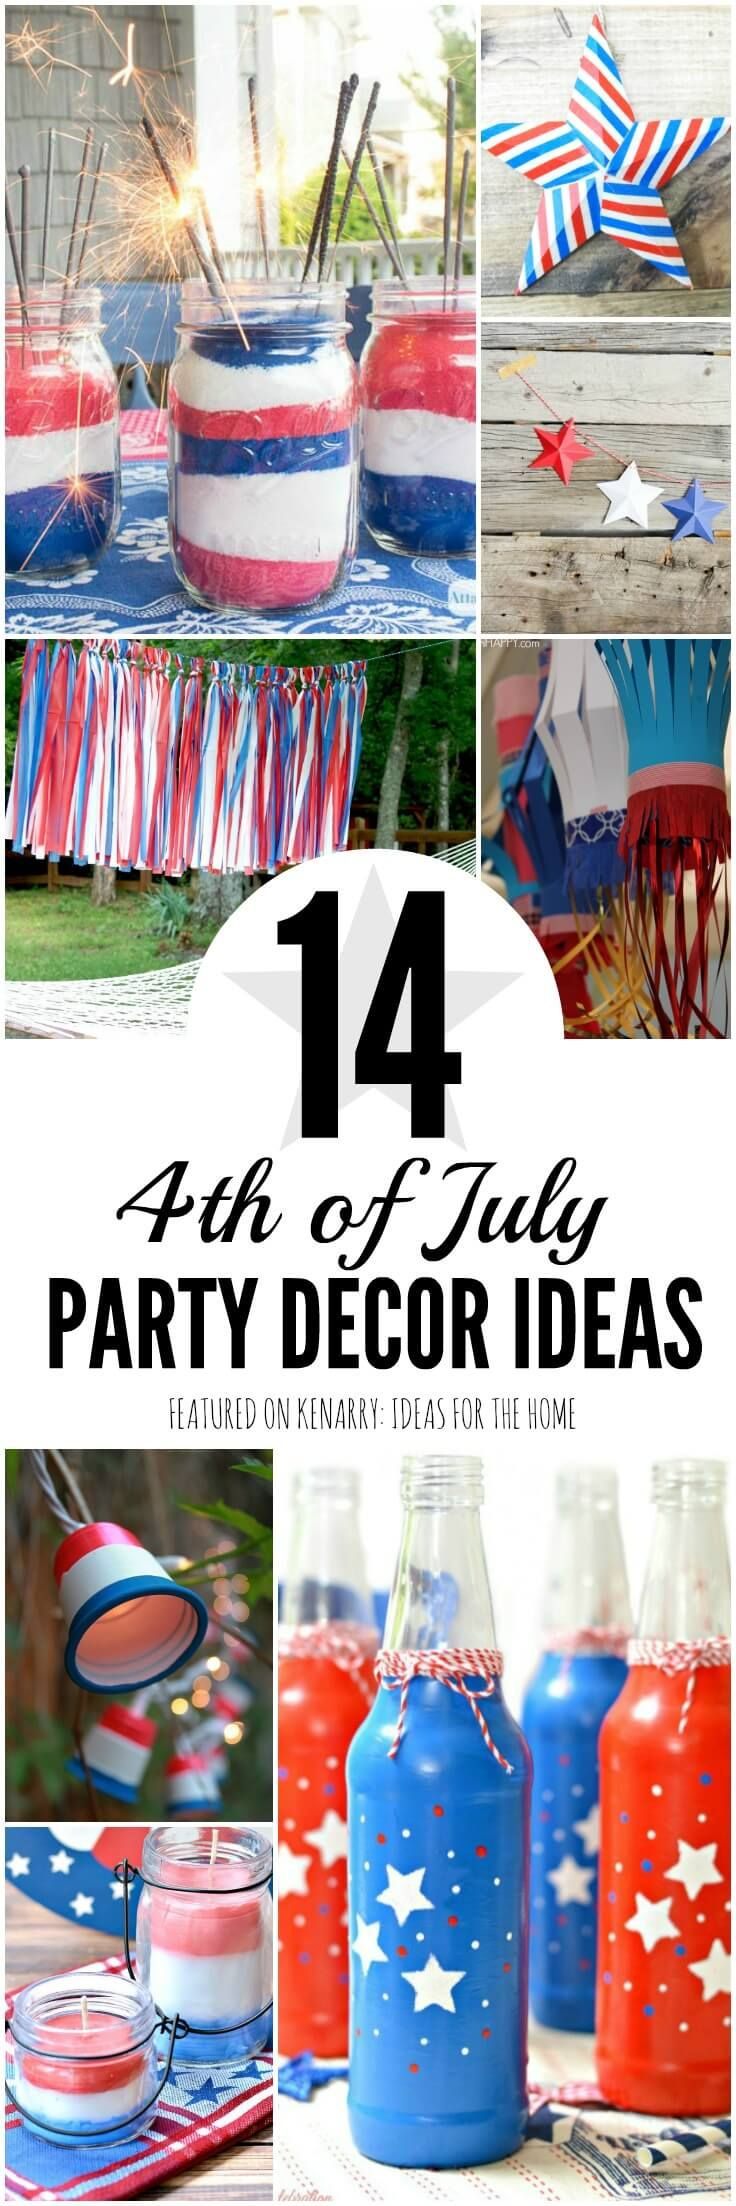 439 best images about 4th of july ideas on pinterest patriotic